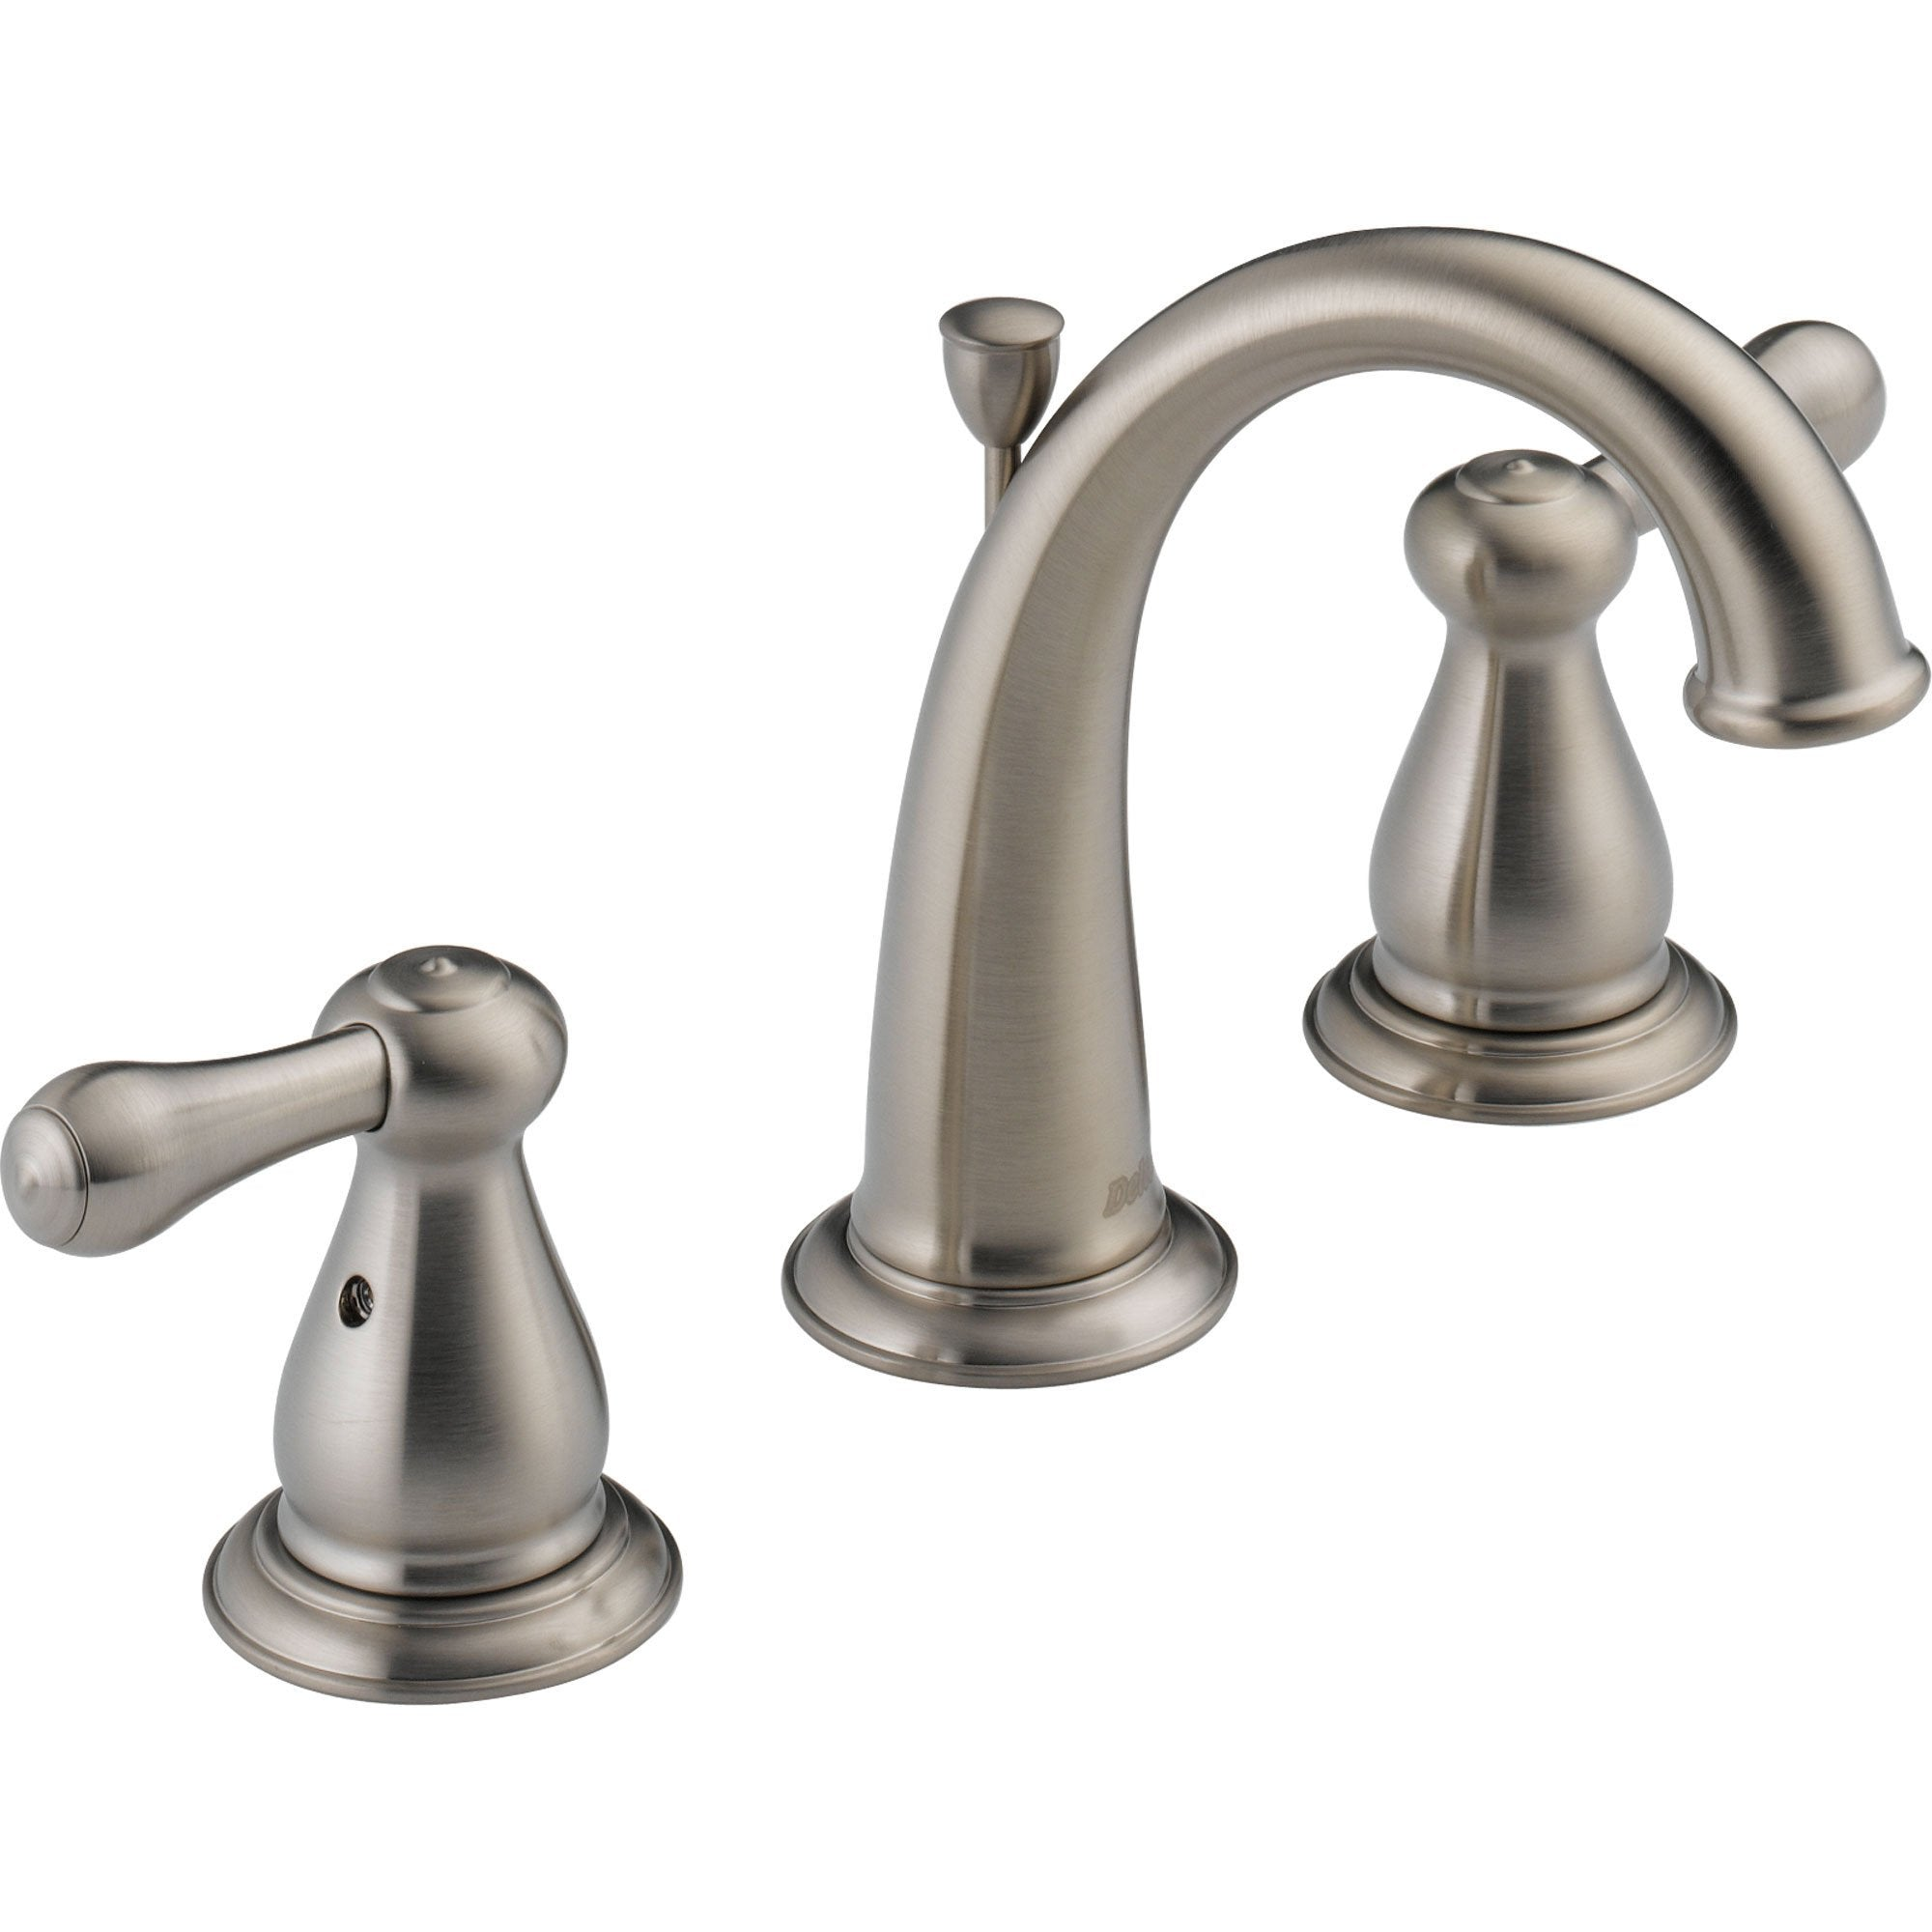 Delta Leland 8 in. 2-Handle High Arc Bathroom Faucet in Stainless Finish 572935